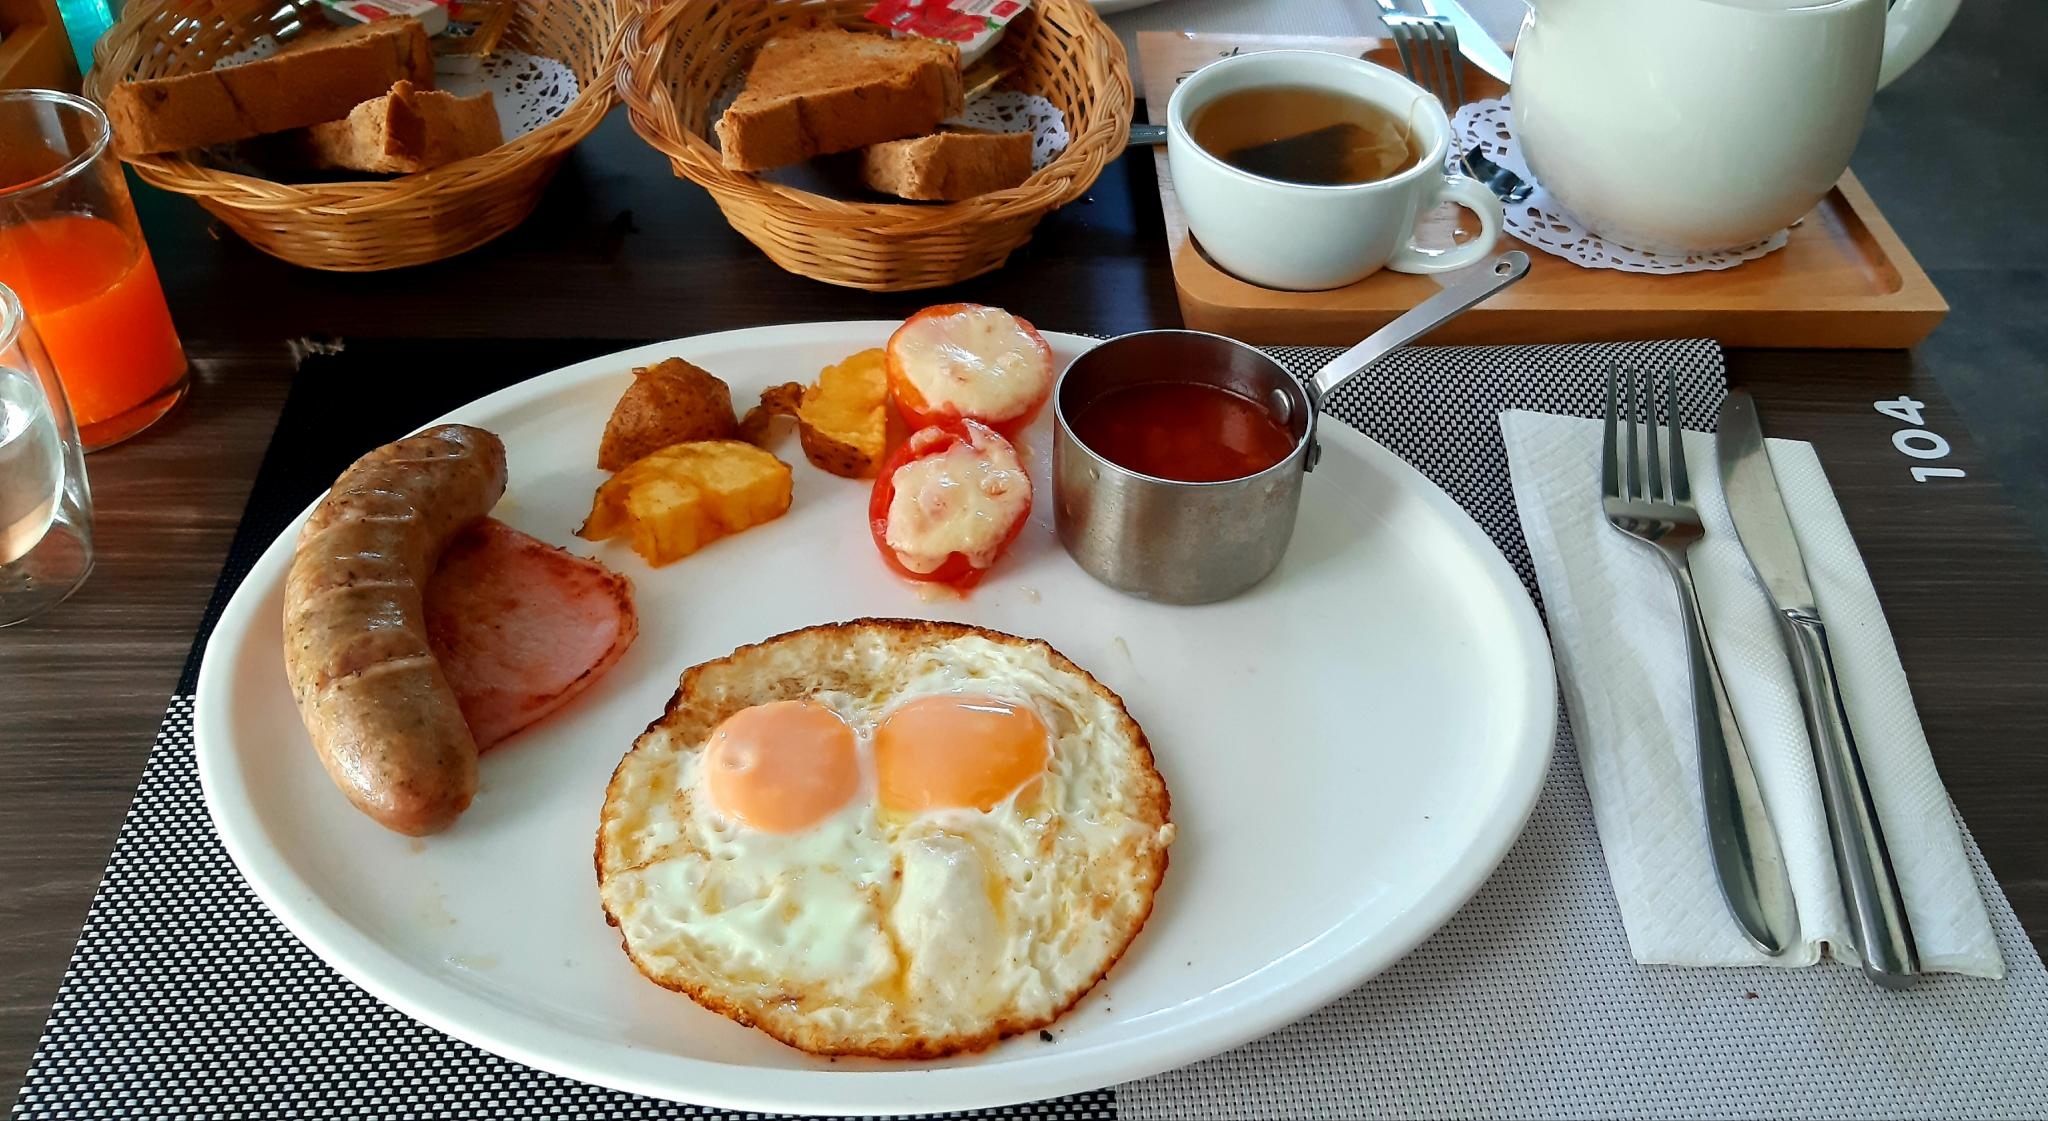 The Best Breakfast in the World Step by Step.: the Full English-20210502_180314-jpg